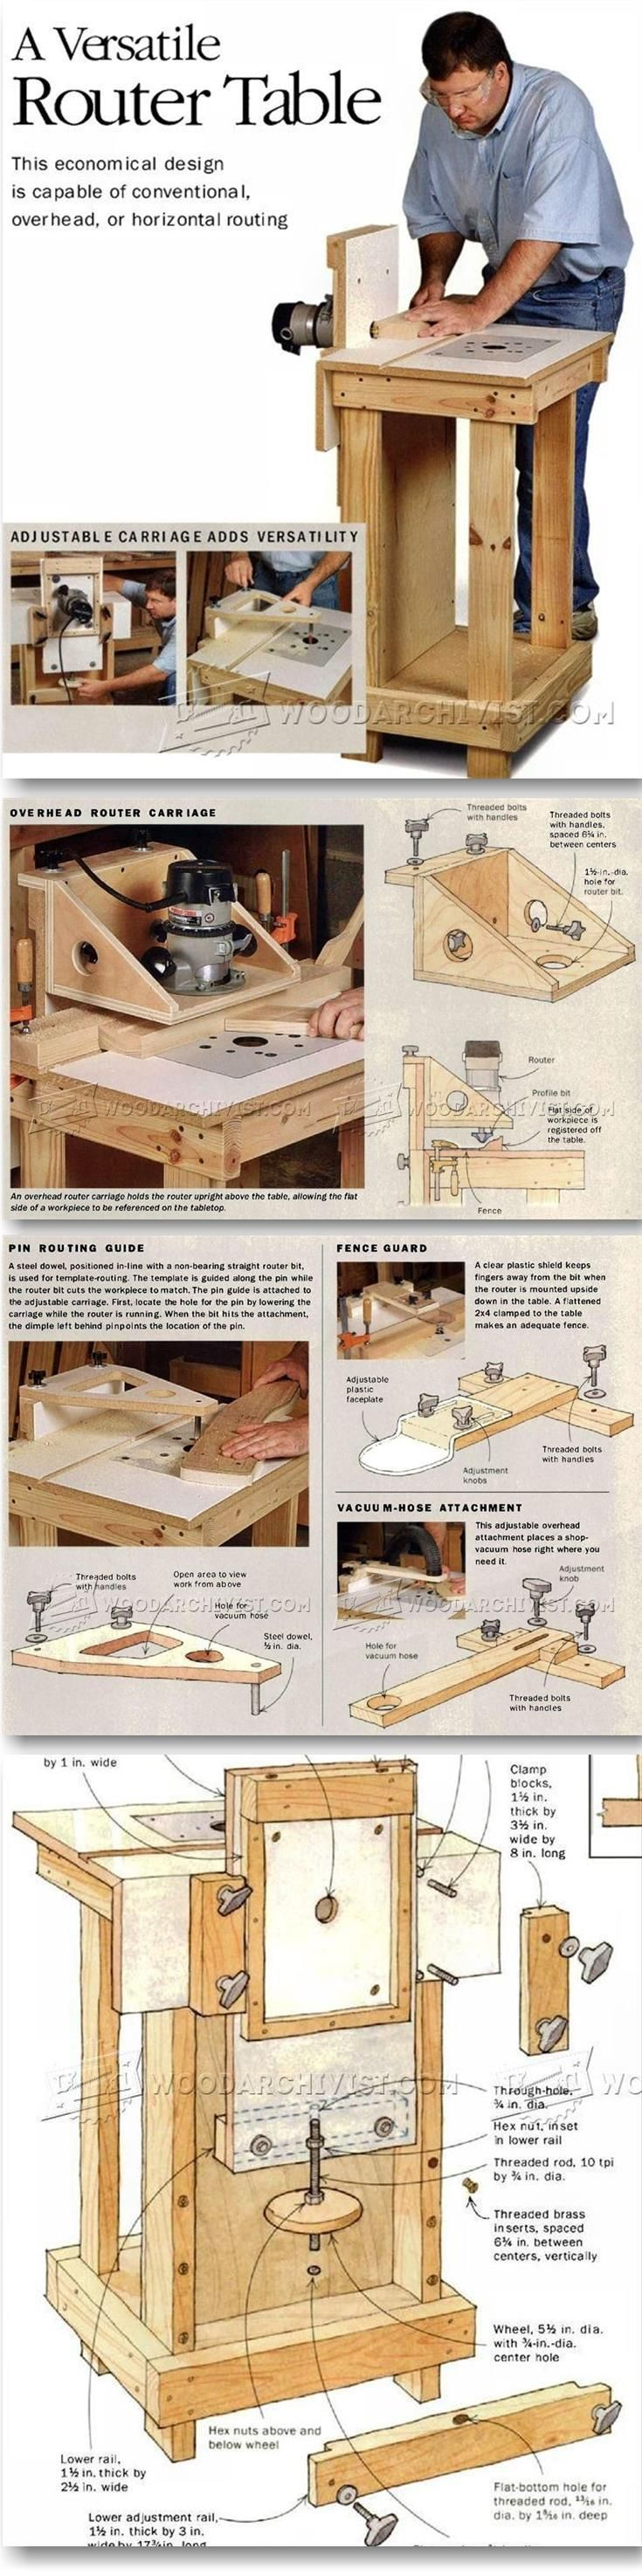 Horizontal router table plans router tips jigs and fixtures horizontal router table plans router tips jigs and fixtures woodarchivist keyboard keysfo Image collections